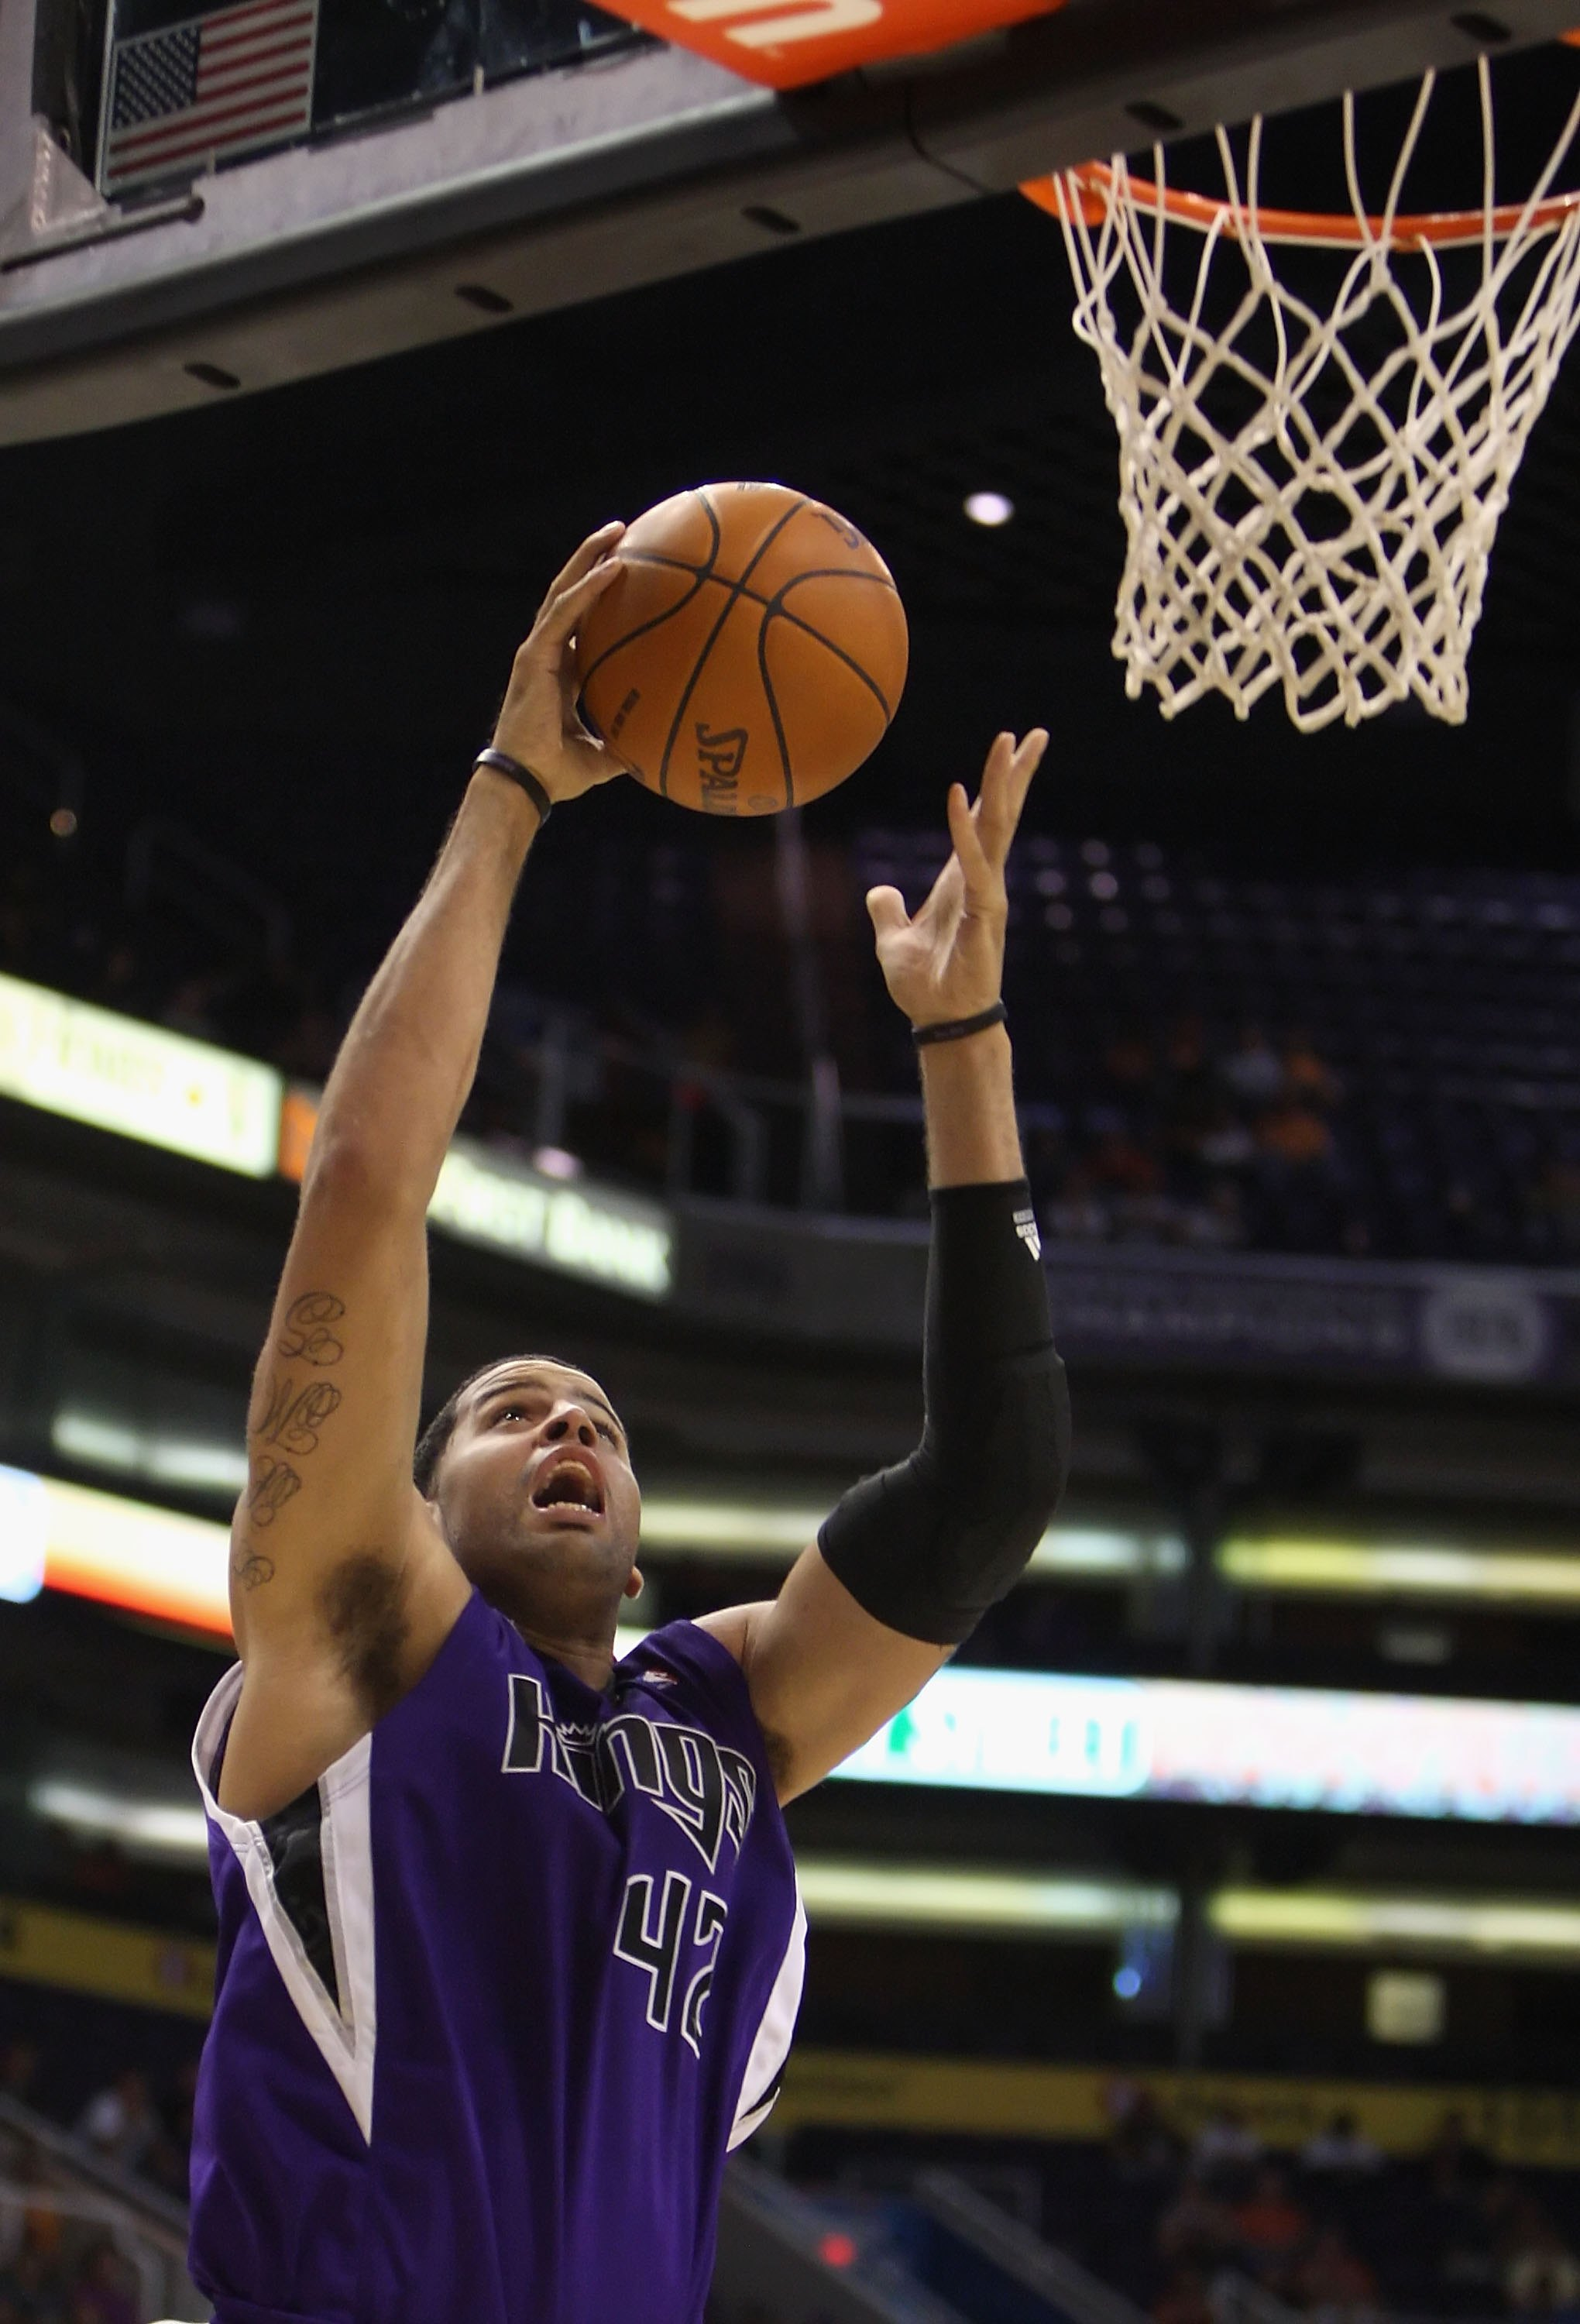 PHOENIX - OCTOBER 20:  Sean May #42 of the Sacramento Kings lays up a shot against the Phoenix Suns during the NBA preseason game at US Airways Center on October 20, 2009 in Phoenix, Arizona. The Suns defeated the Kings 143-127.  NOTE TO USER: User expres